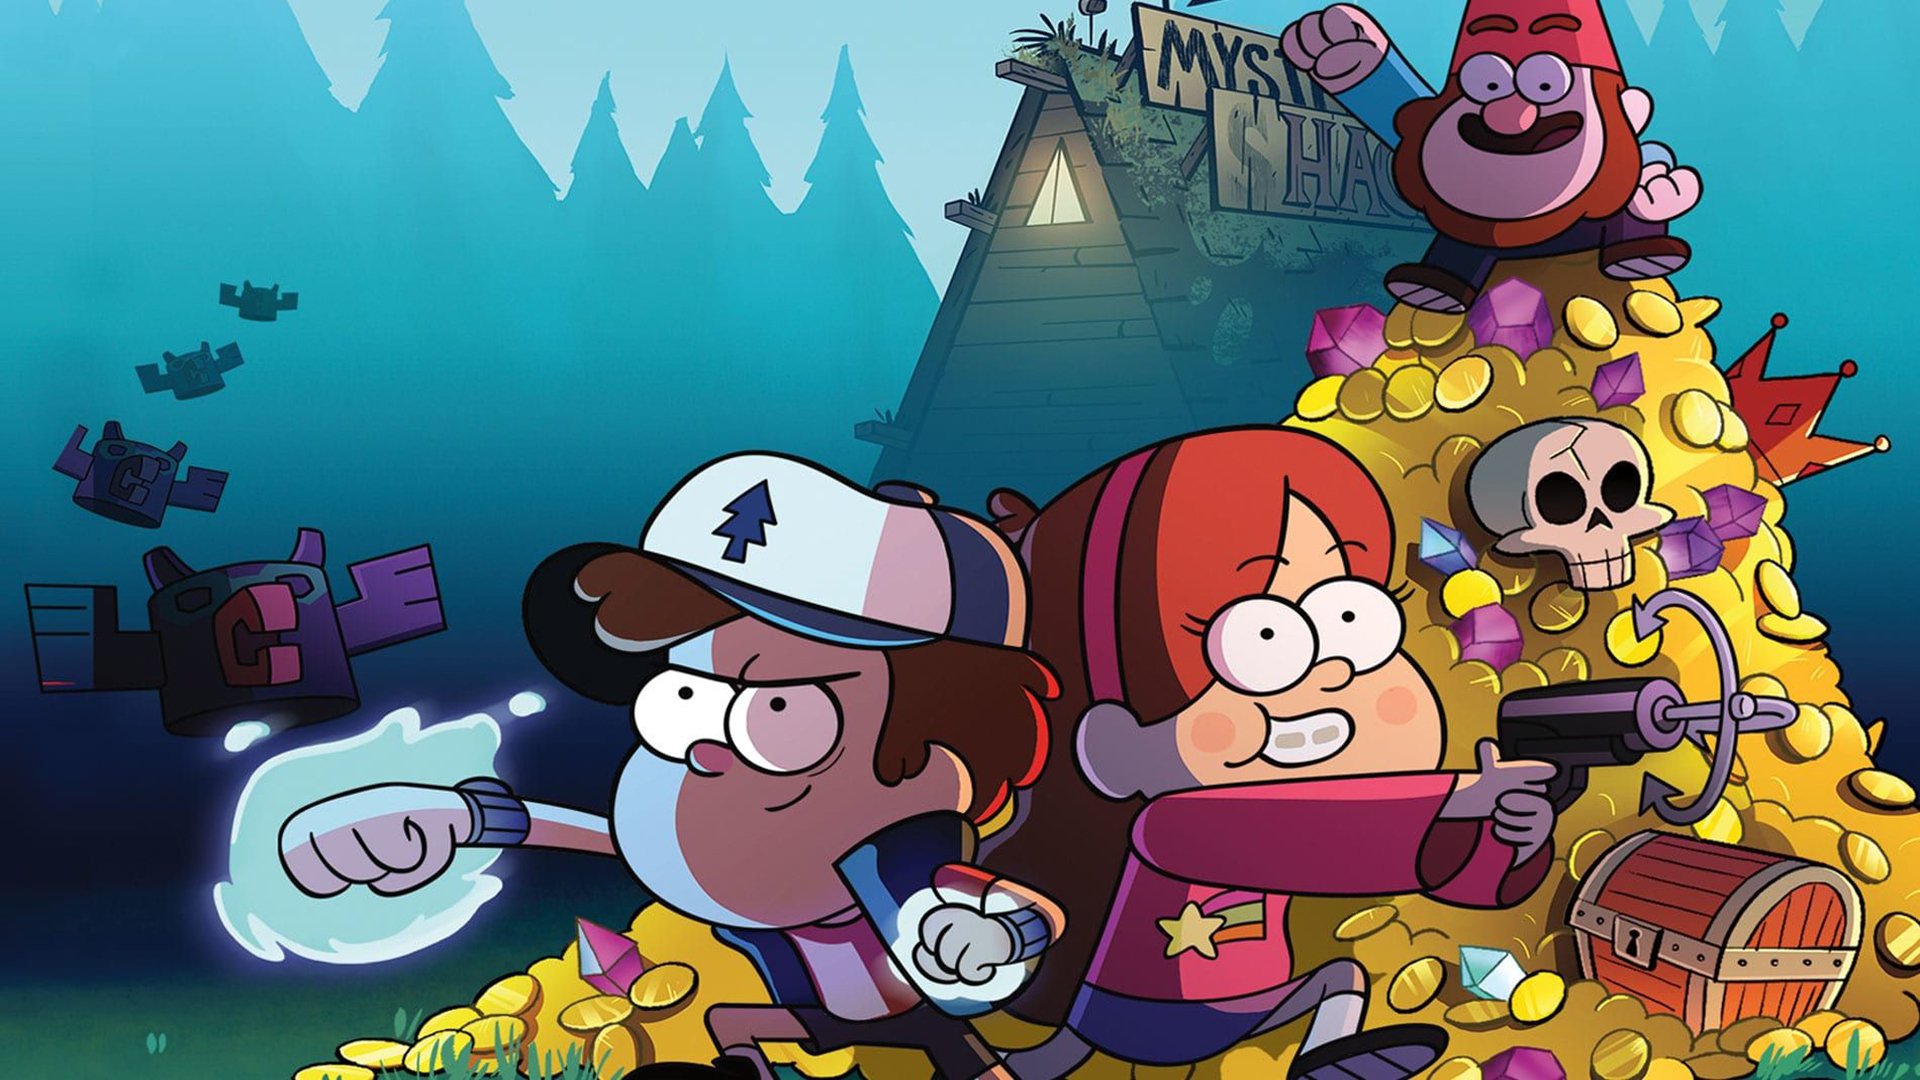 Gravity Falls Legend Of The Gnome Gemulets Dipper , HD Wallpaper & Backgrounds